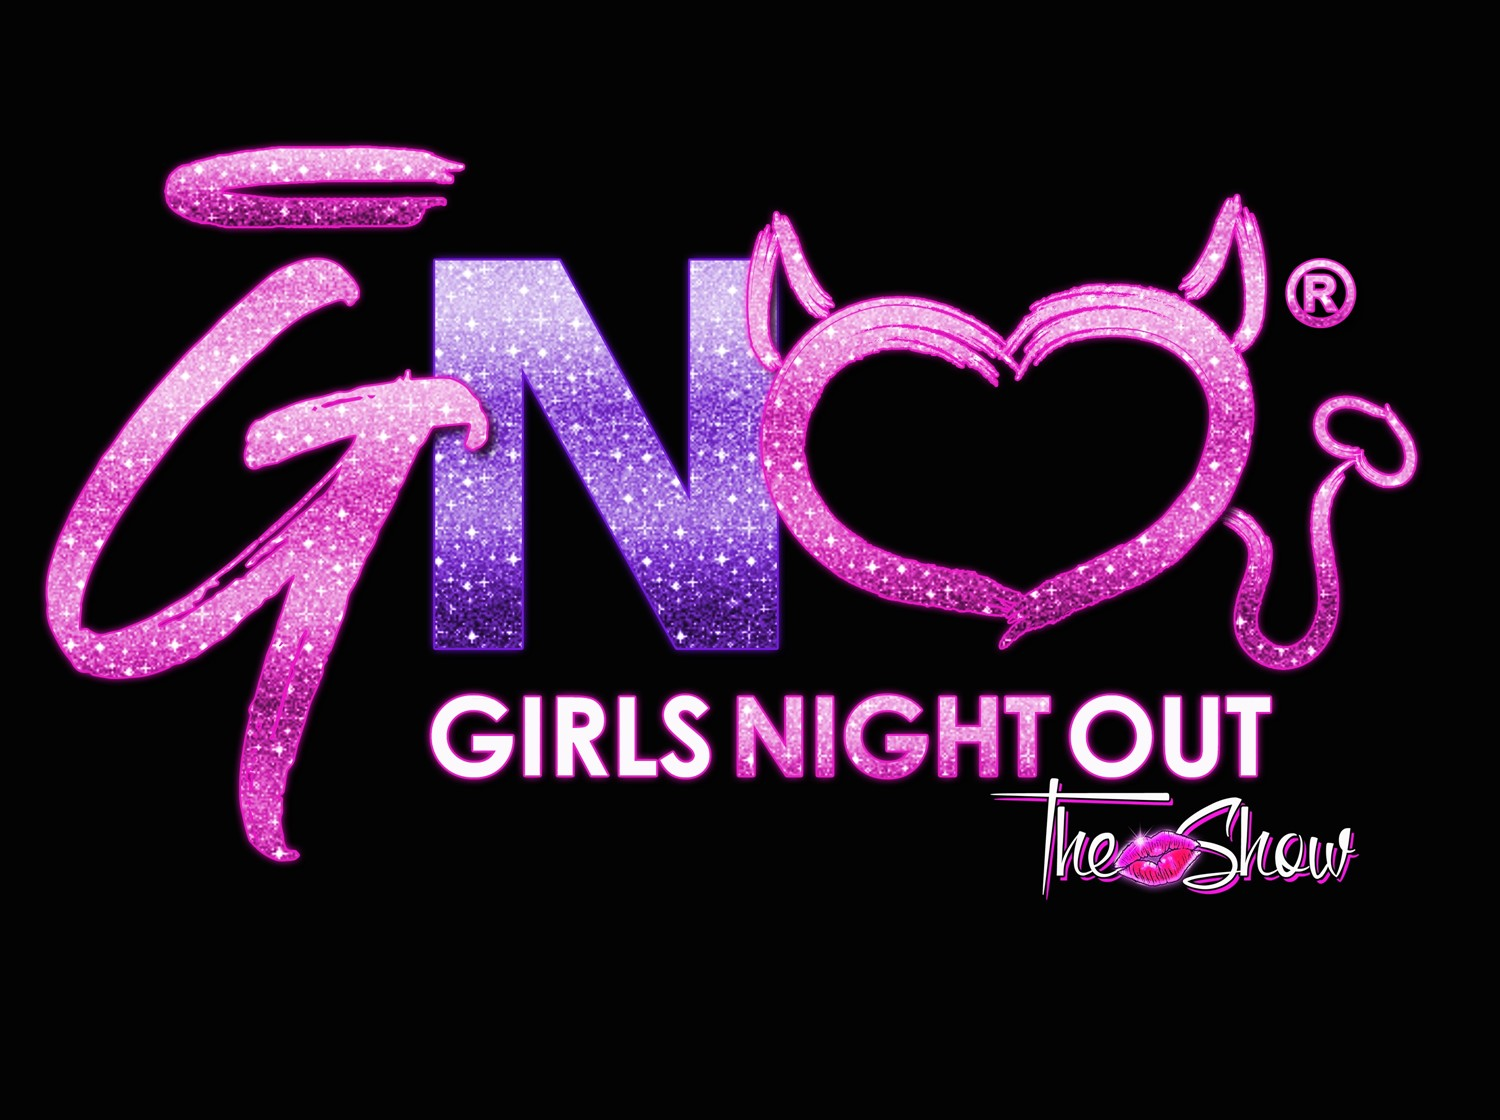 RedRock Saloon (18+) Denison, TX on May 29, 20:00@RedRock Saloon - Buy tickets and Get information on Girls Night Out the Show tickets.girlsnightouttheshow.com